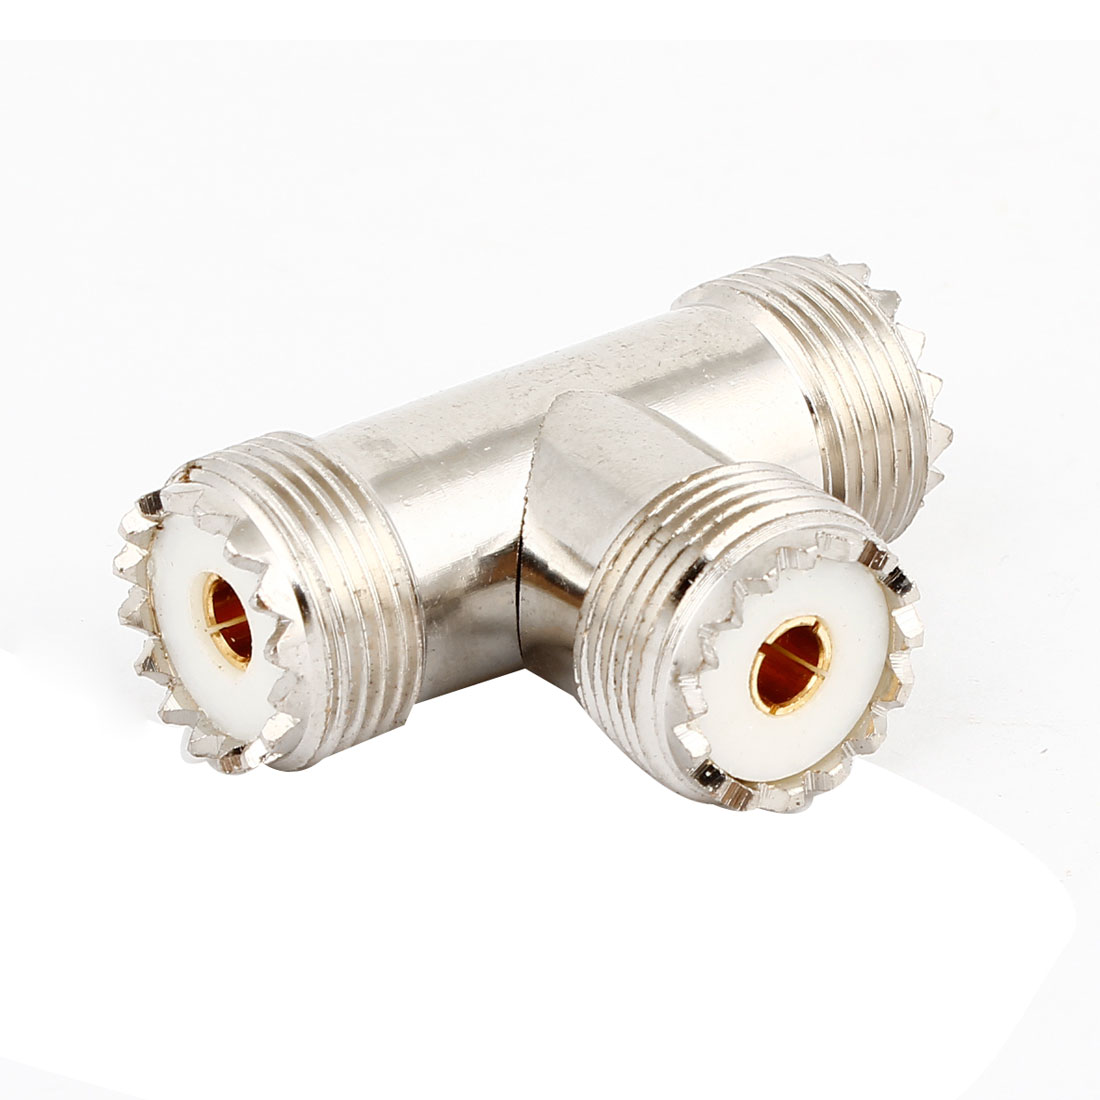 Silver Tone UHF Female to 2 UHF Female Jack Adapter 3 Way T-Shaped Connector